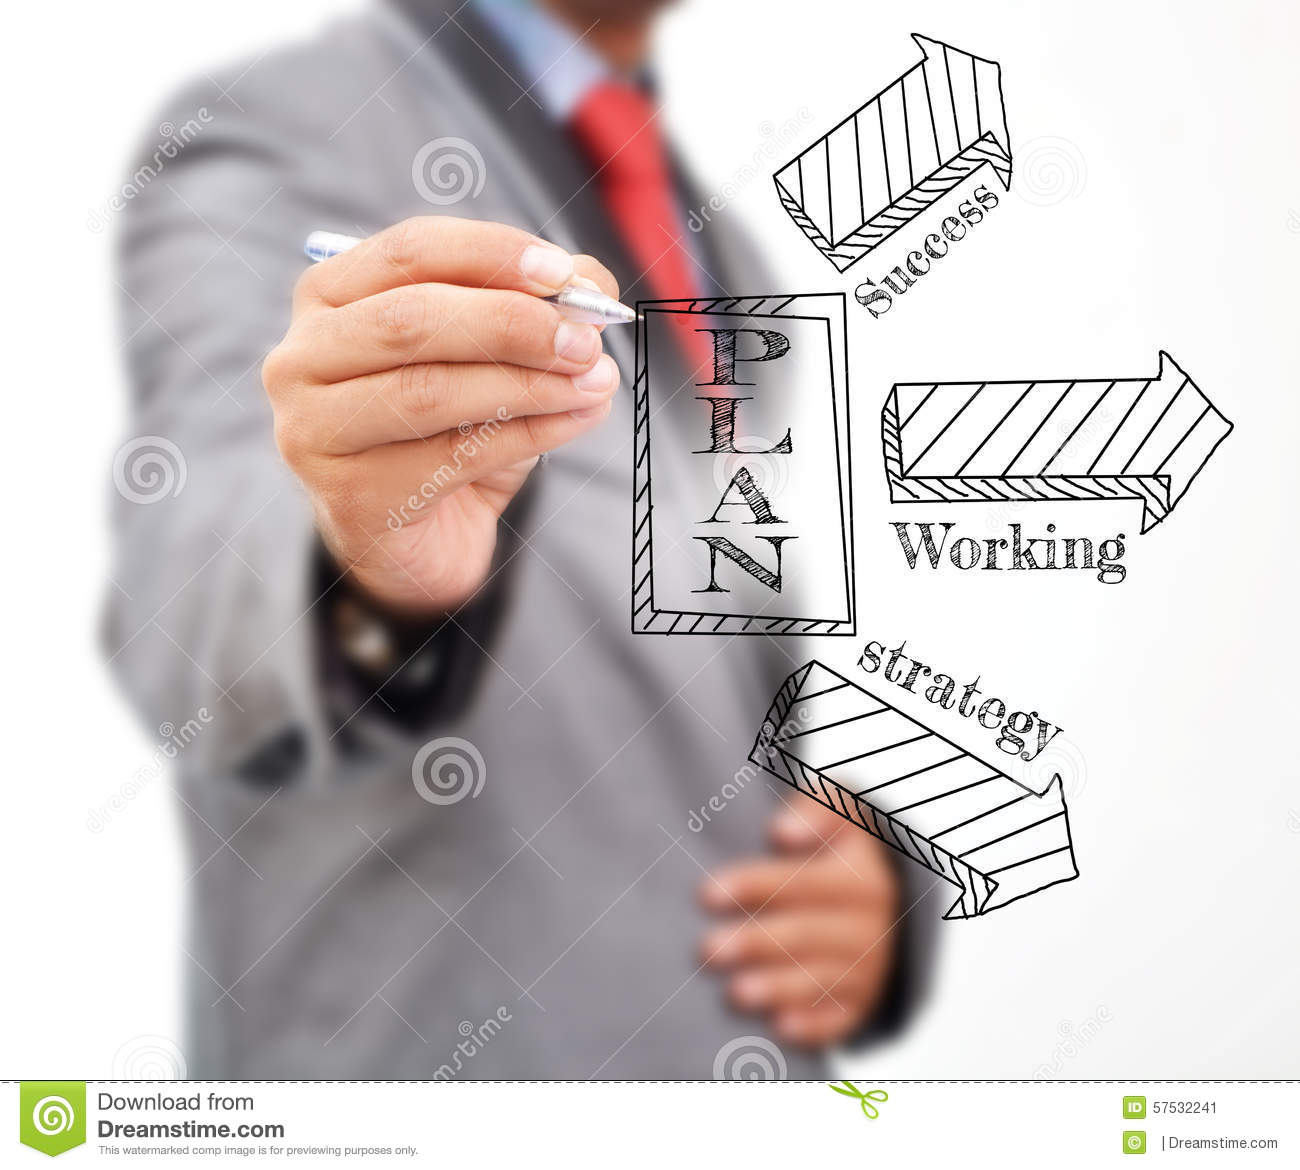 Professional Writing A Plan Stock Photo - Image: 57532241